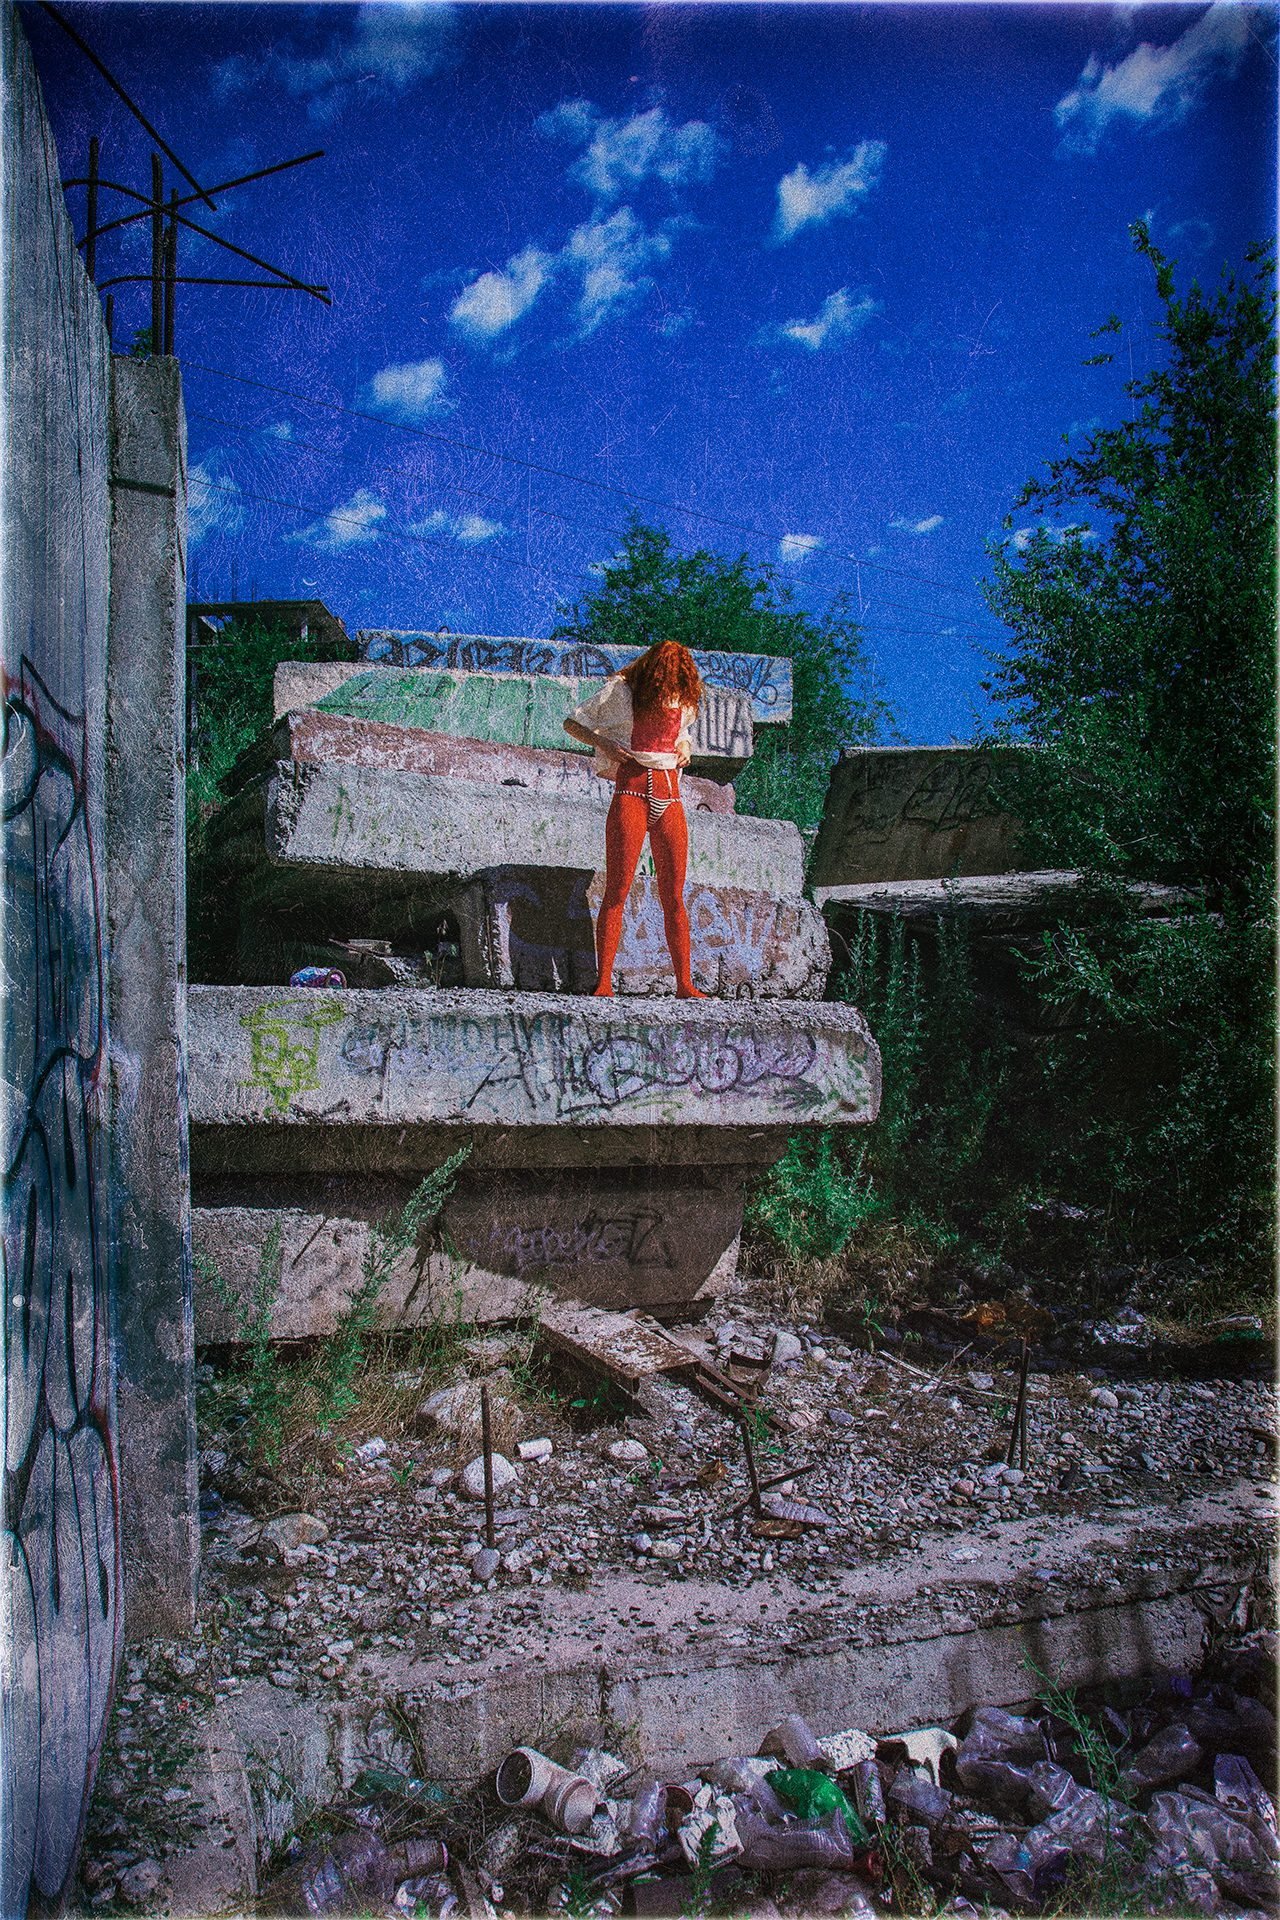 Peace of Meat, exhibition, Photographer, Ivan Bessedin, Model, Eugenia Fattahova, Fashion, designer, Indira Muratova, Almaty, art, model, style, abandoned, photo session, photoset, photography, thrash, trash, garbage, pollution, ecology, dirty, red girl, concrete, cans, reinforcement, armature, red stockings, bra